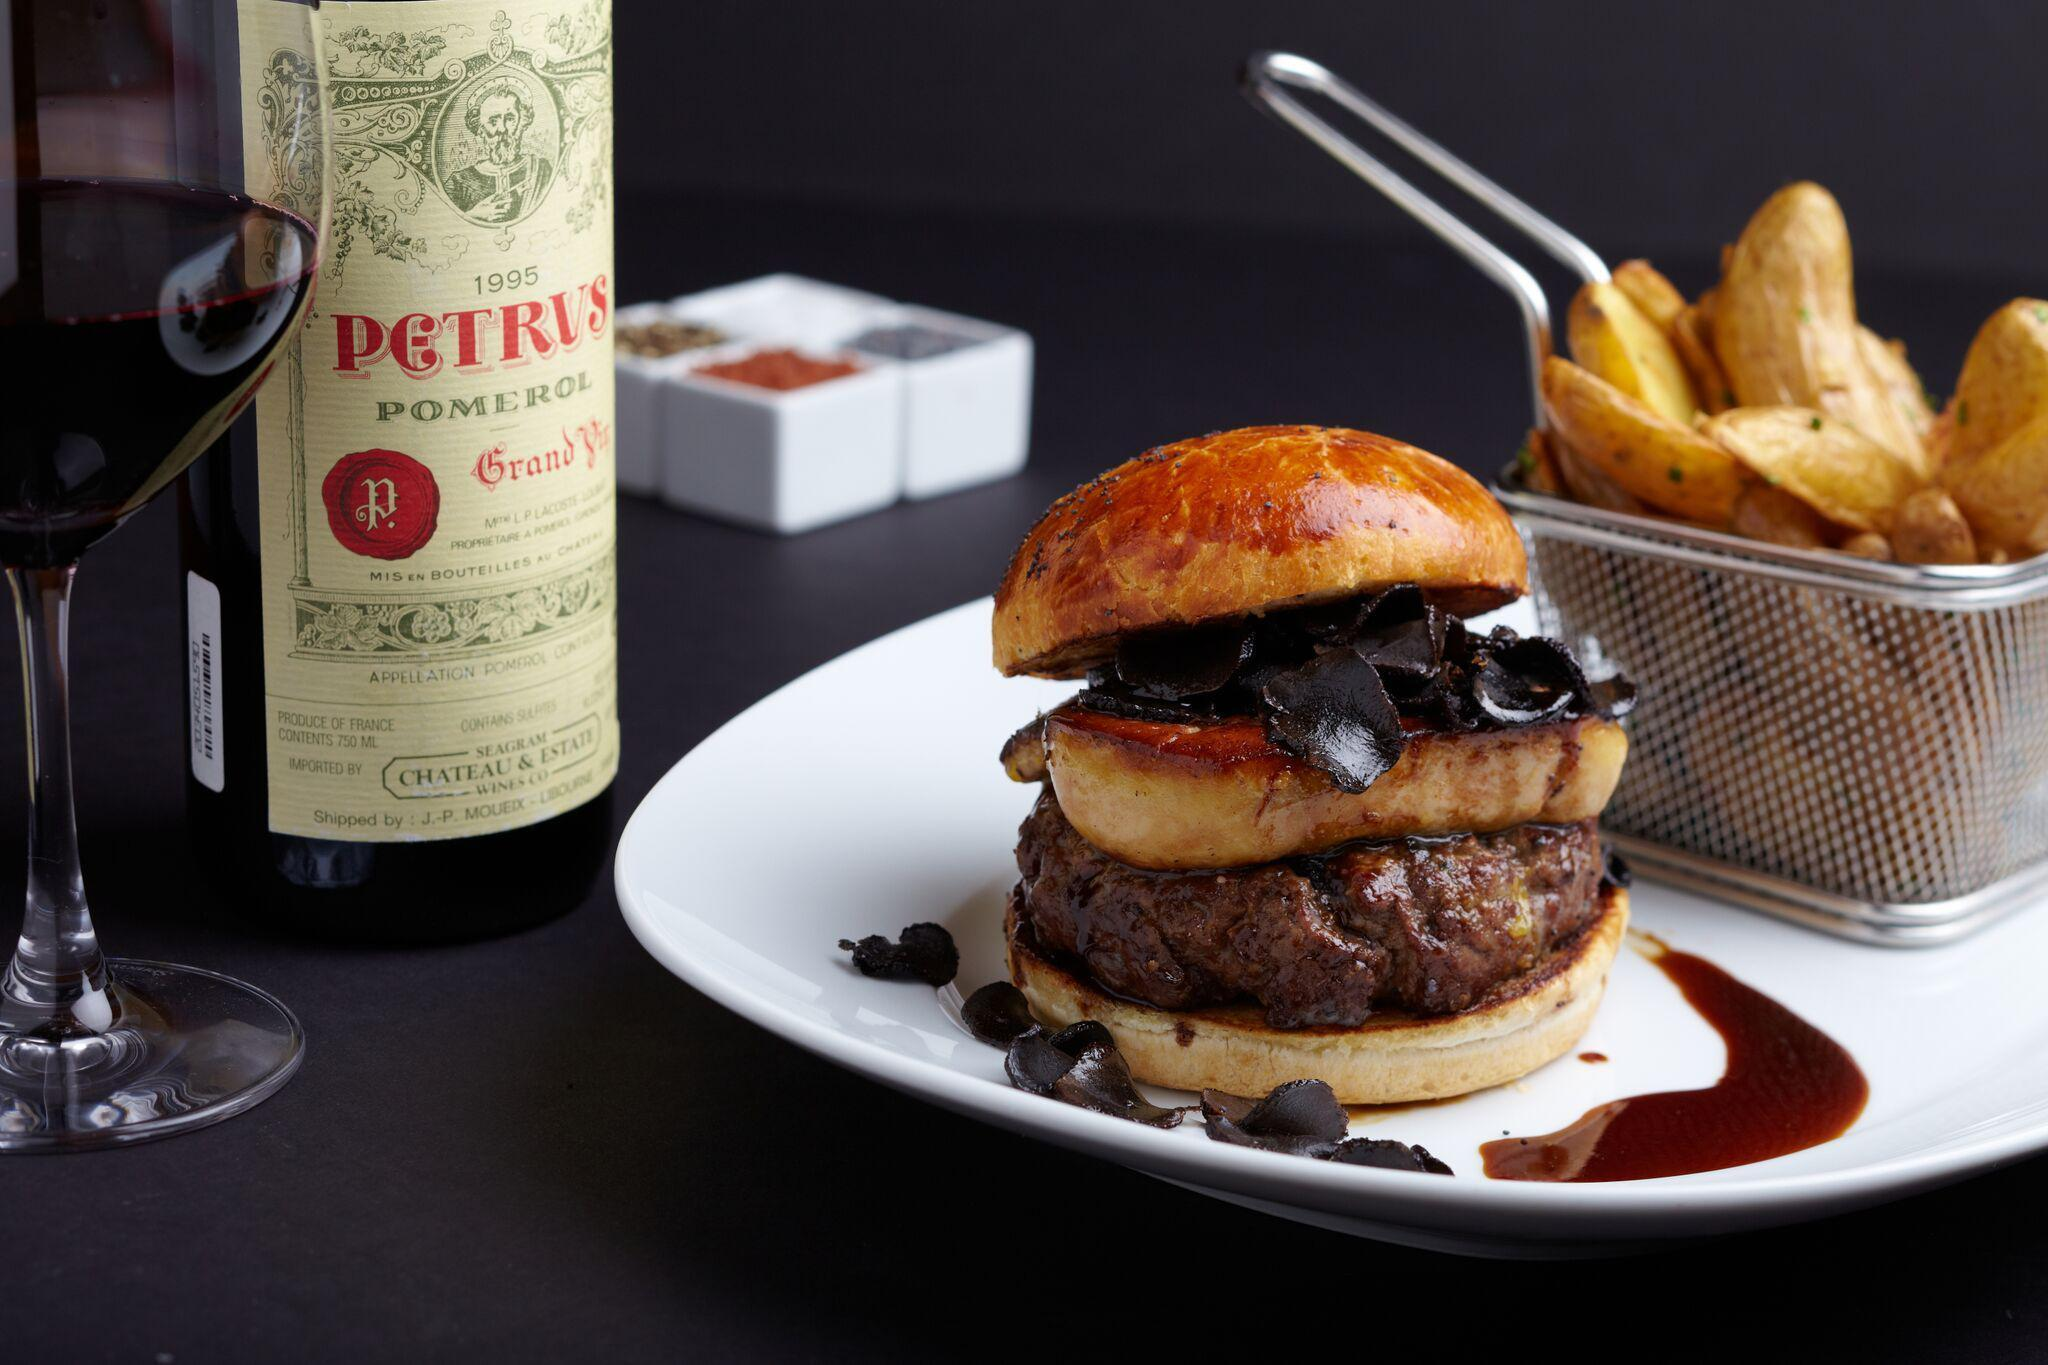 This is the most expensive burger in the world